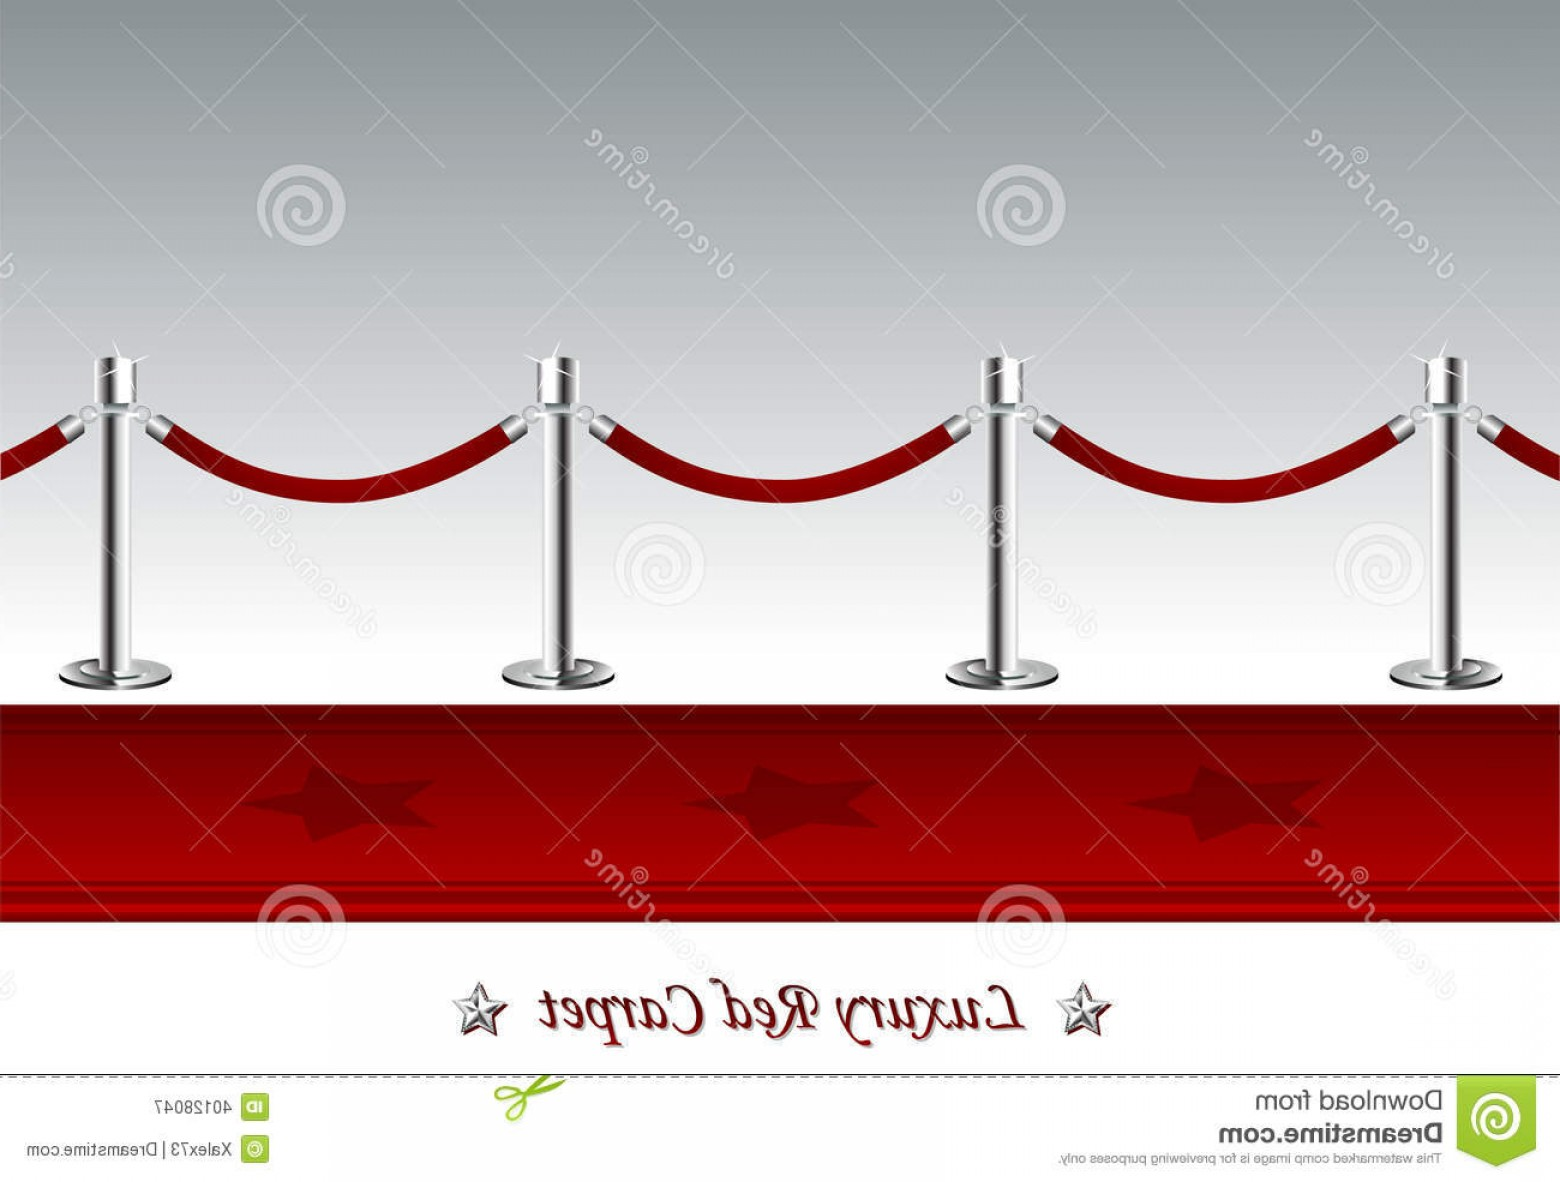 Carpet Vector 2D: Luxury Red Carpet With Barrier Rope Illustration